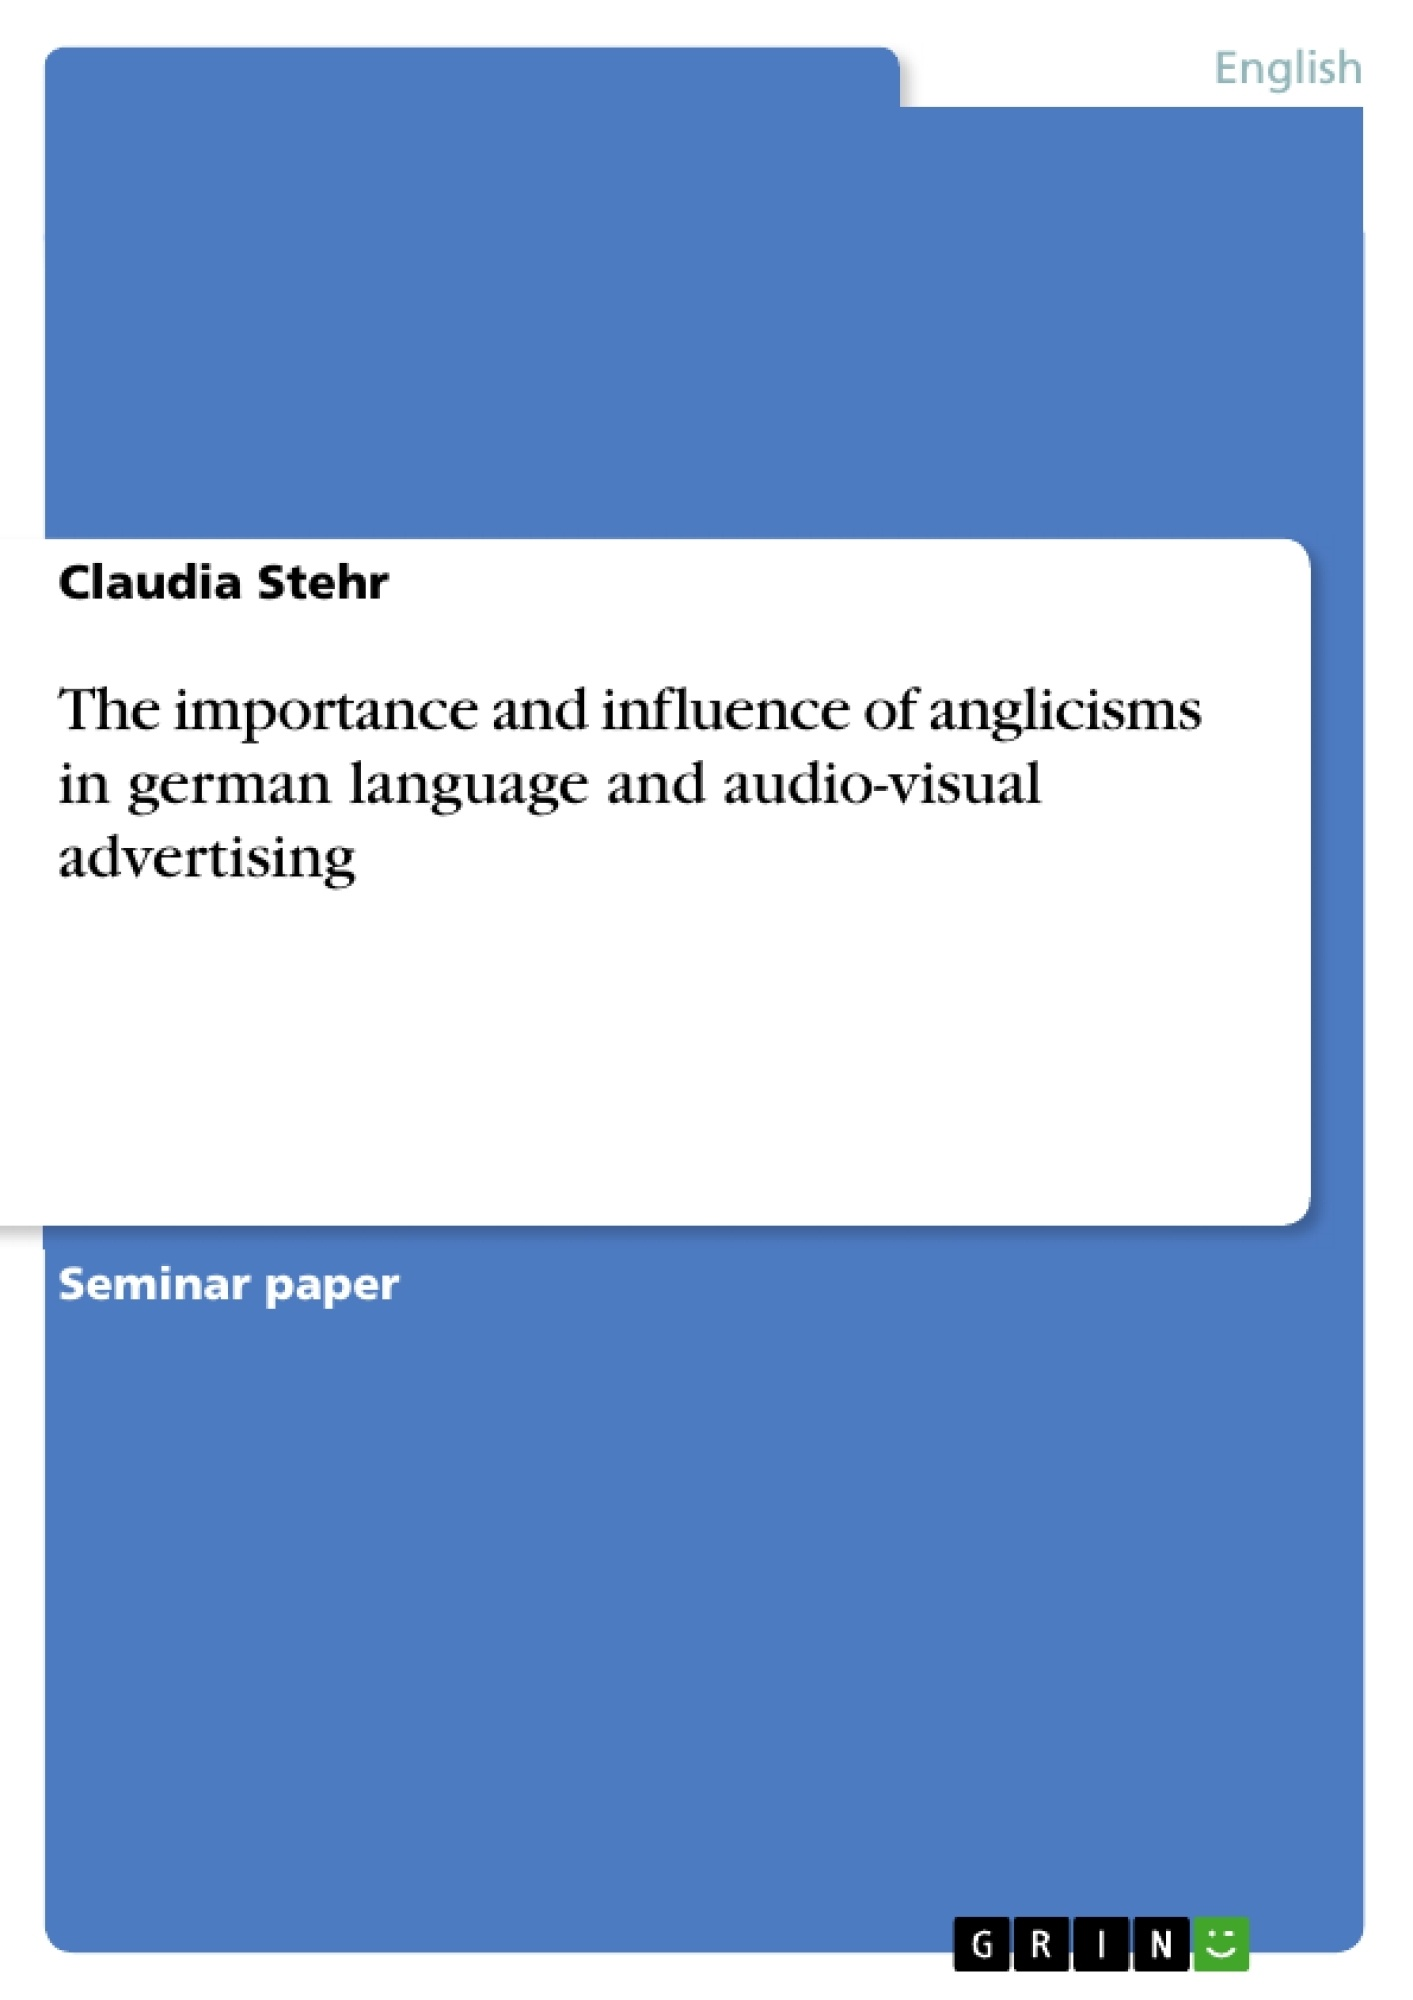 Title: The importance and influence of anglicisms in german language and audio-visual advertising